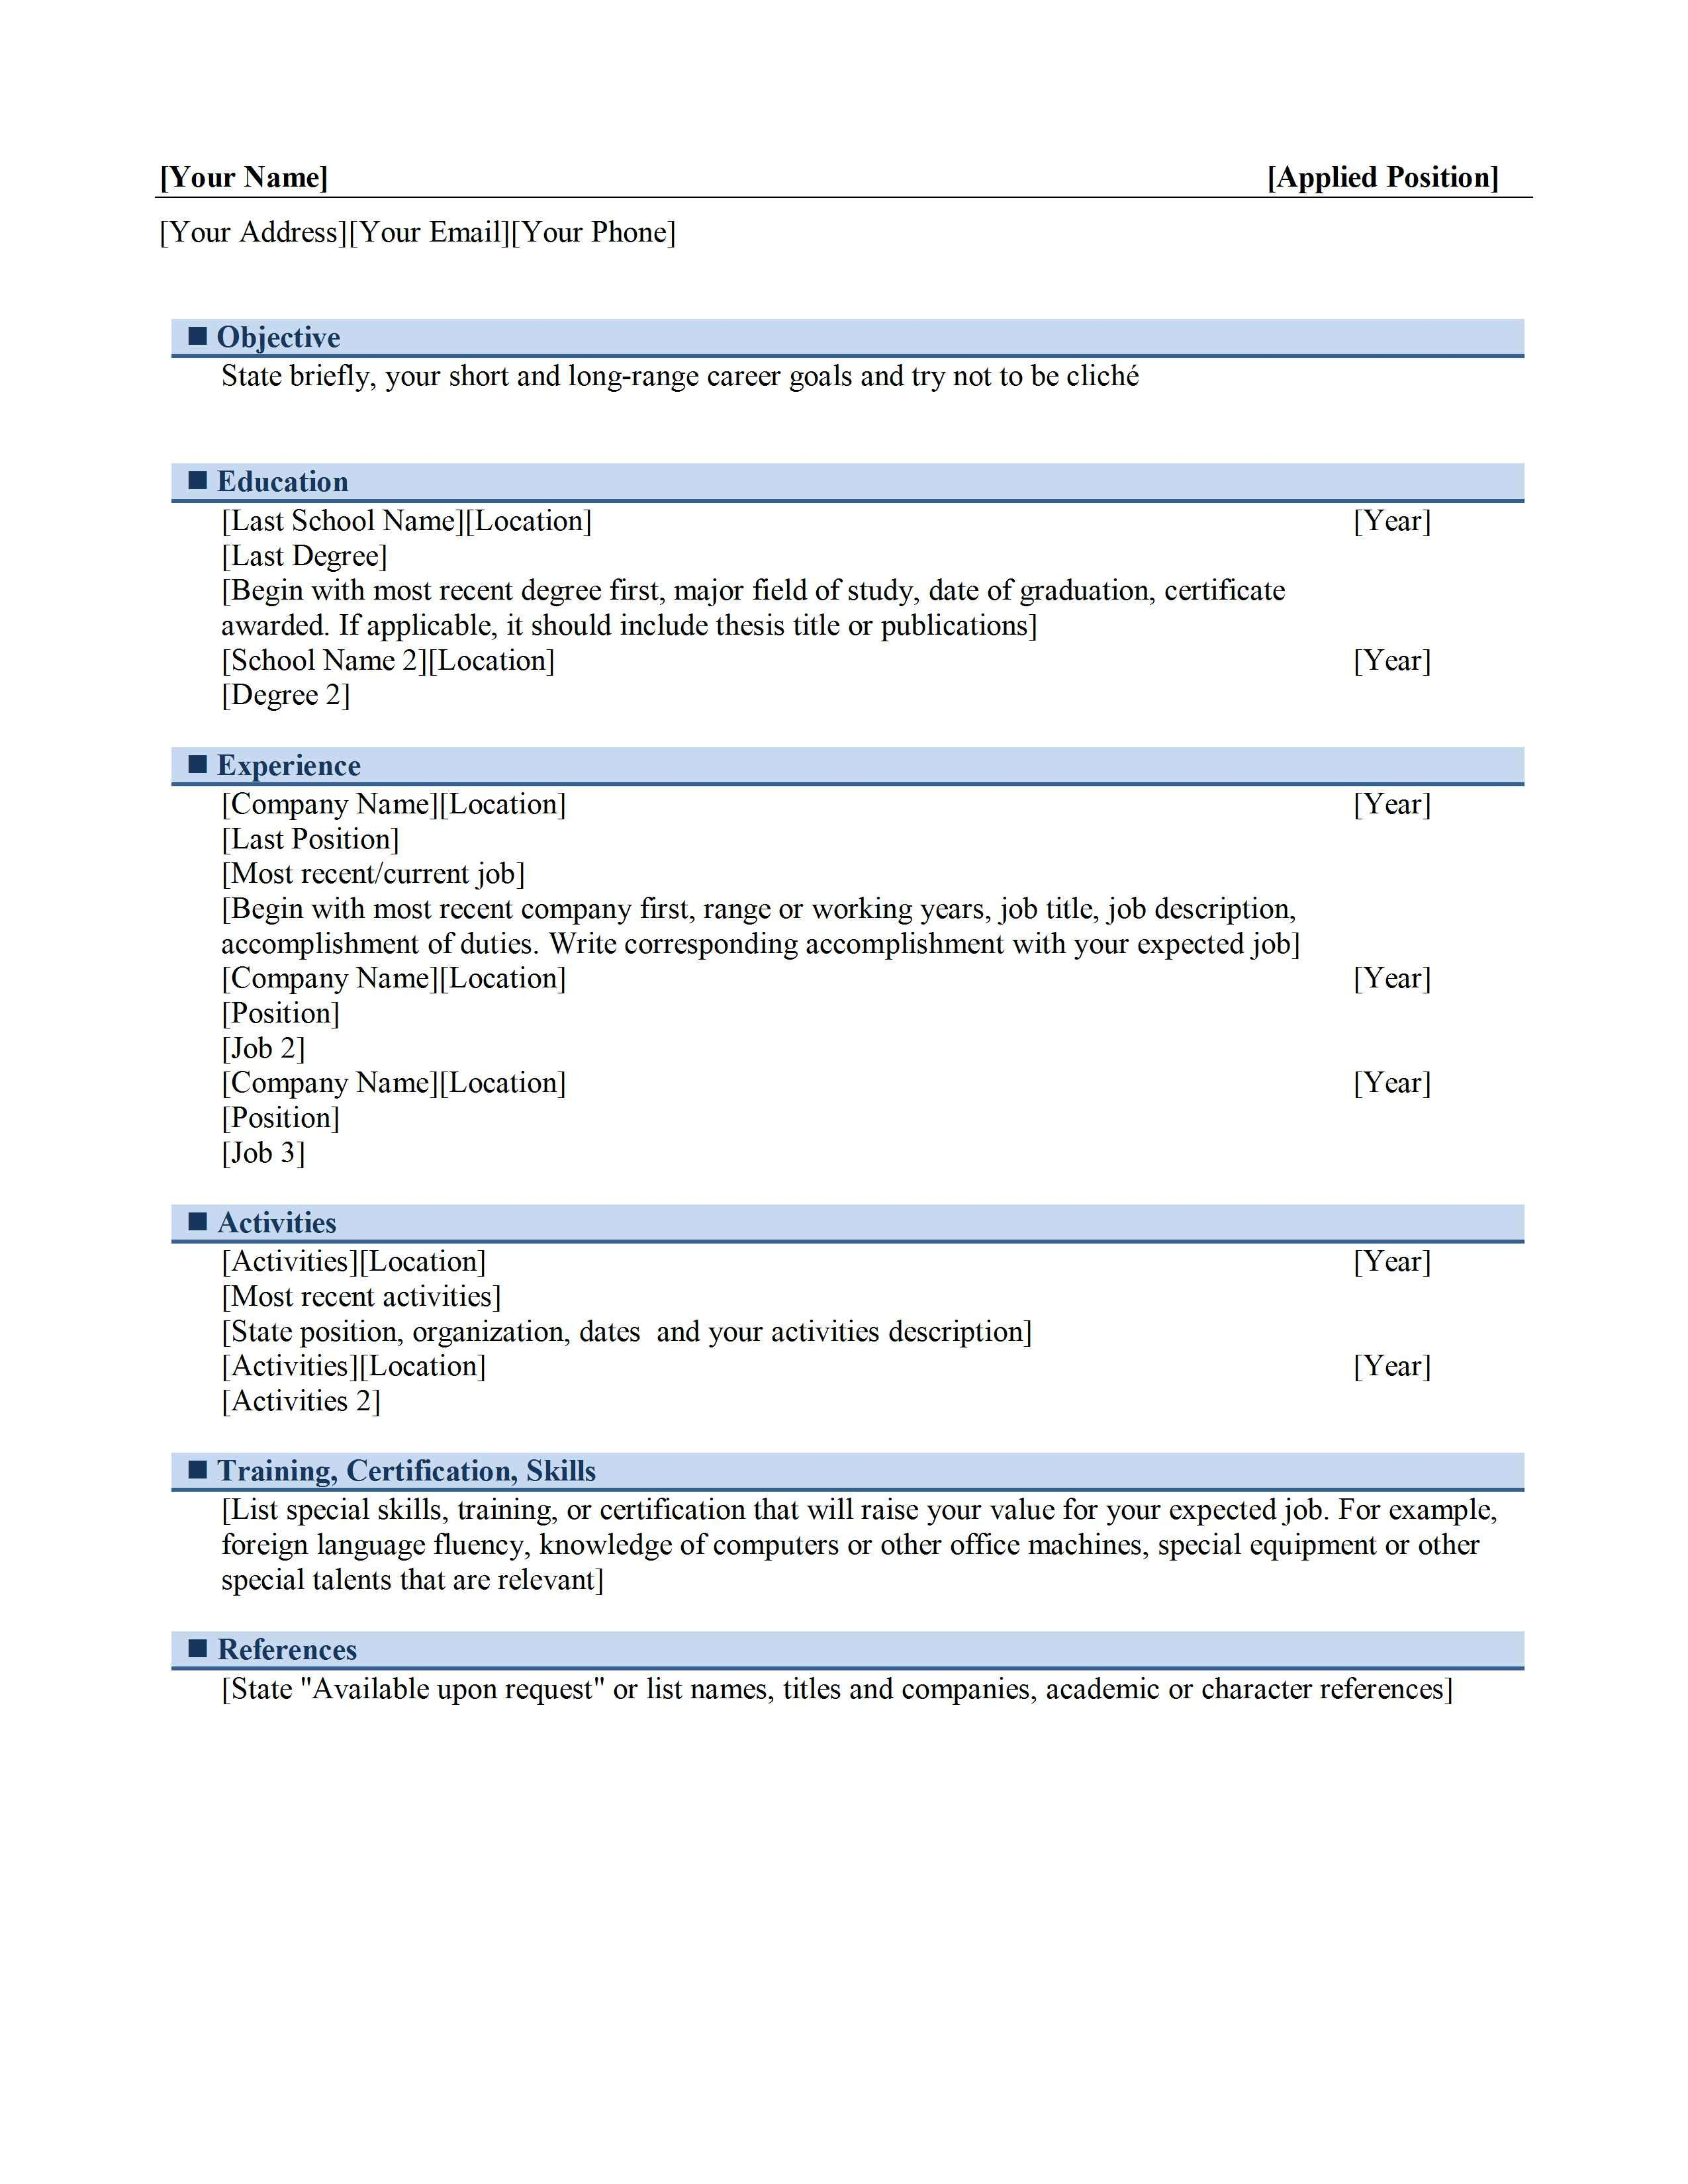 office equipment list for resume example-fice Equipment List for Resume 21 fice Equipment List for Resume 6-t